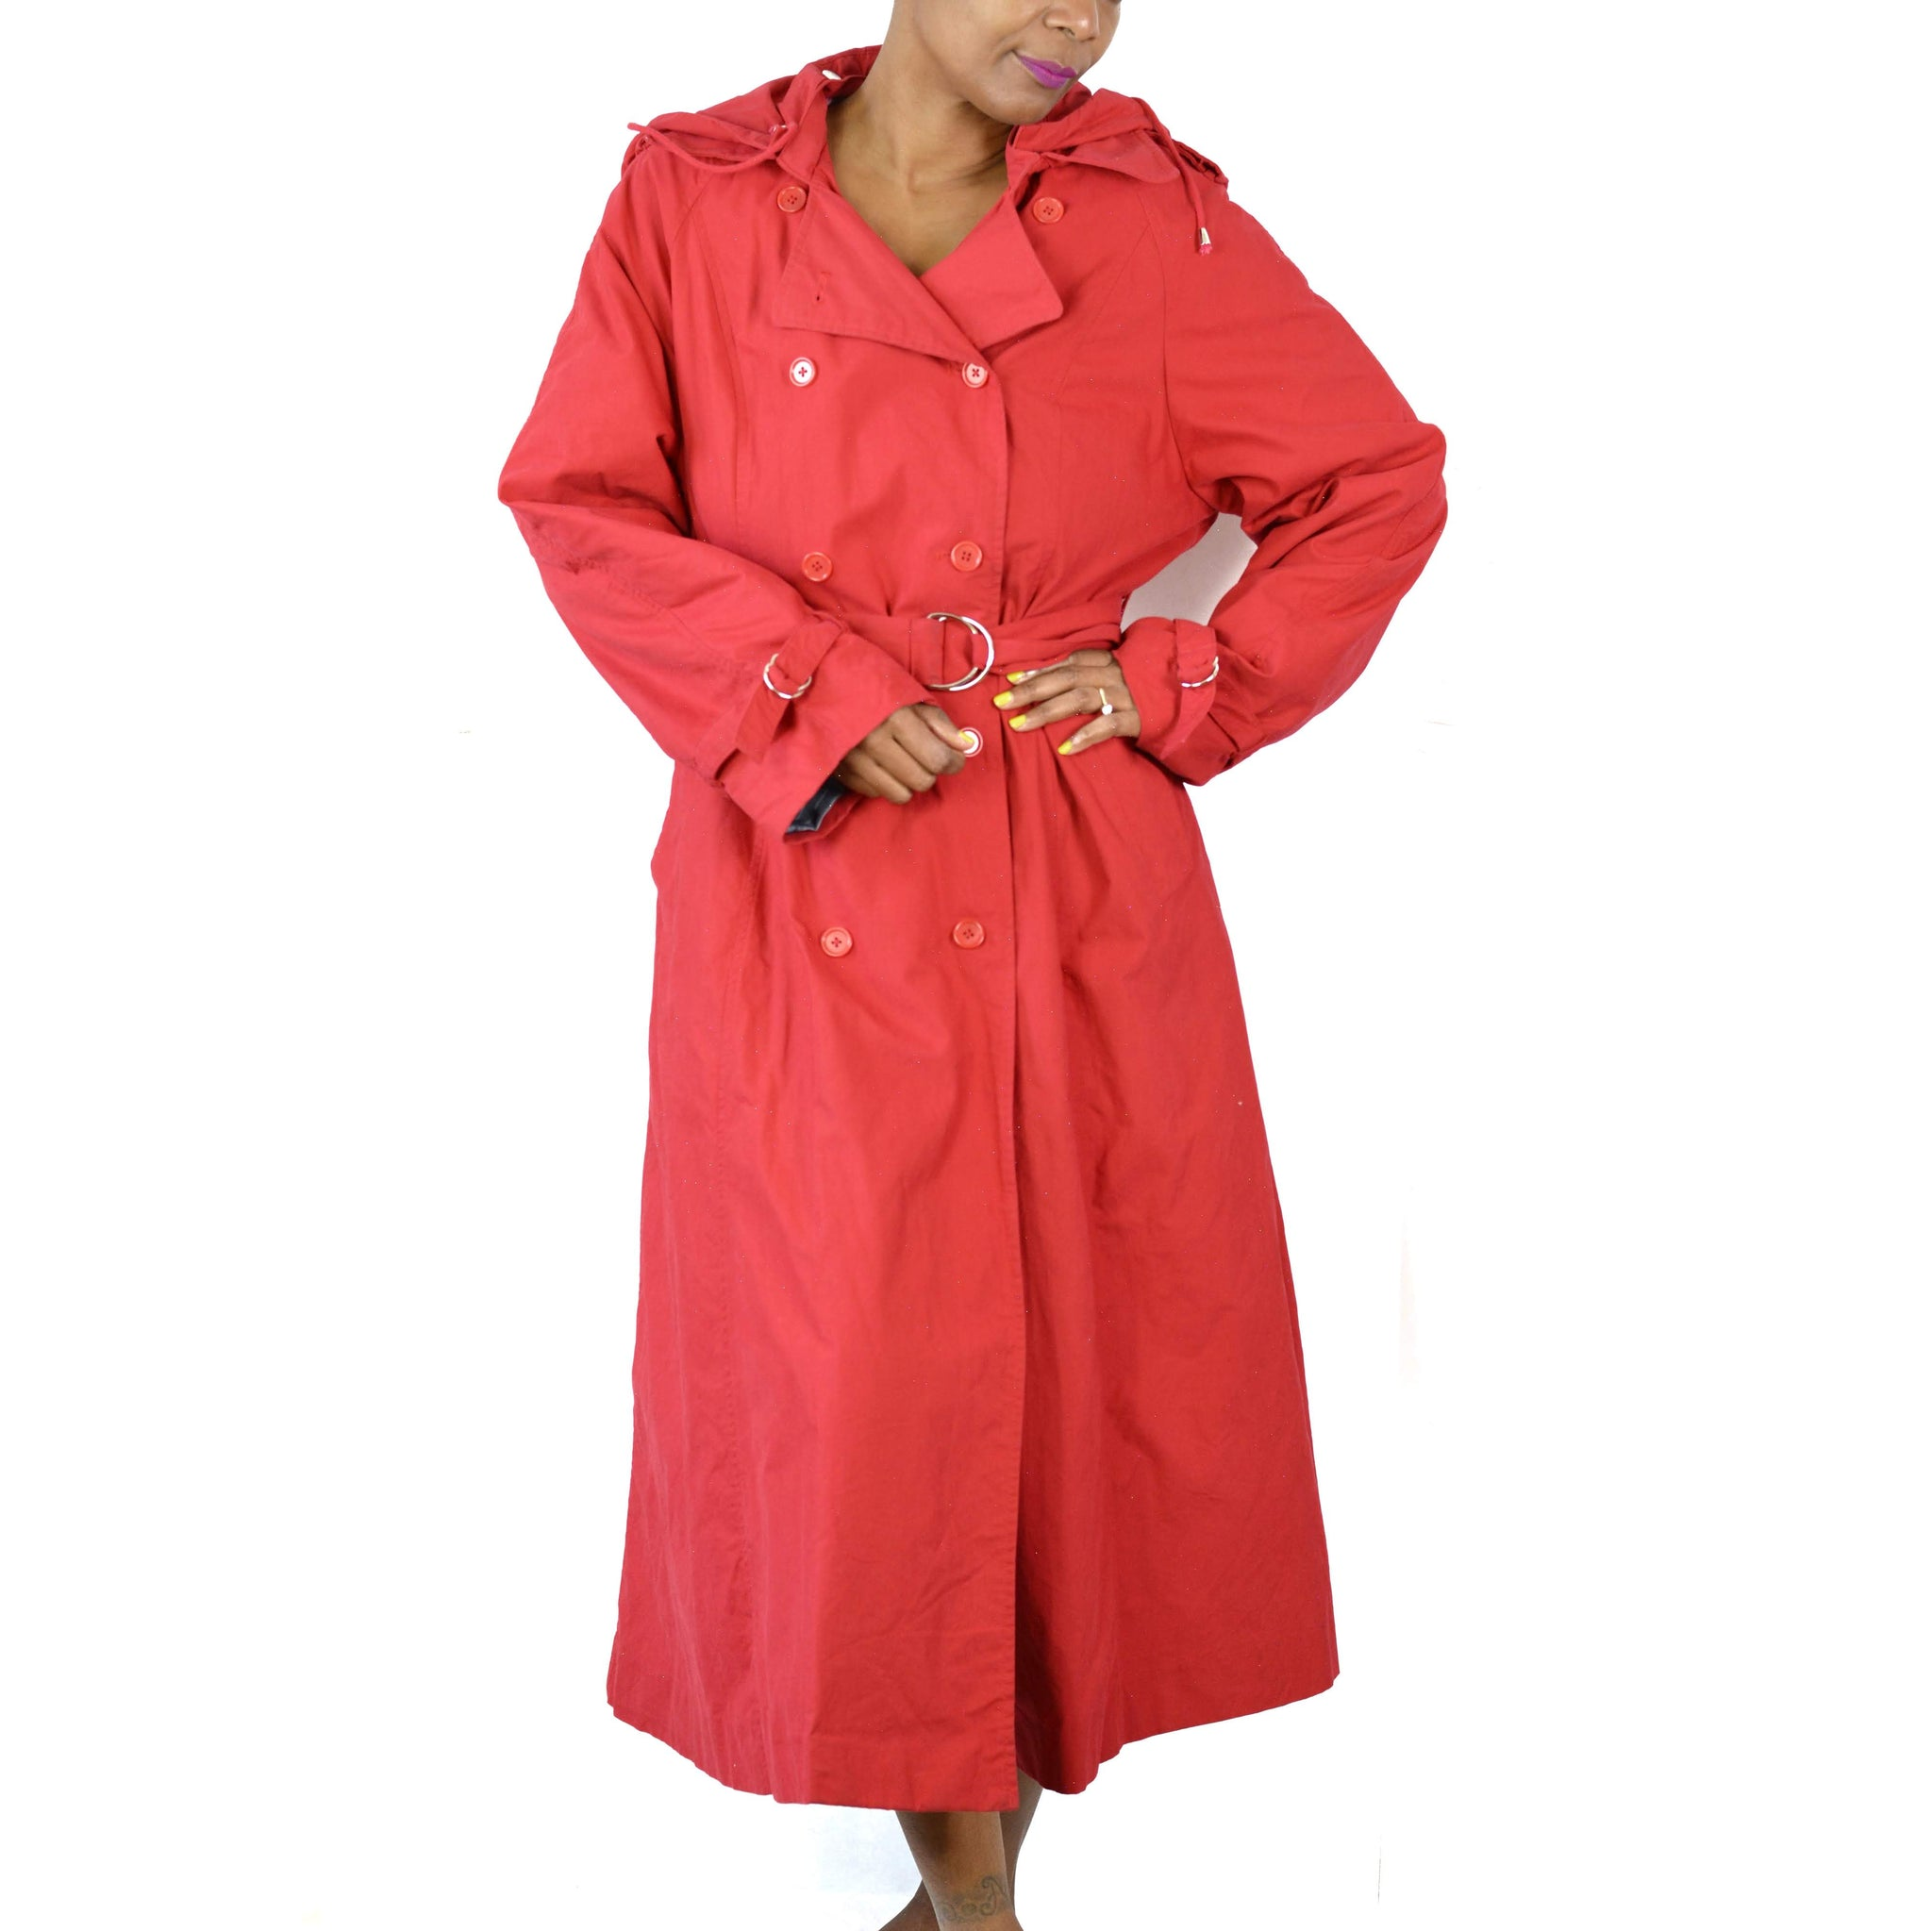 J Peterman Hooded Raincoat European Trench Coat Size 14